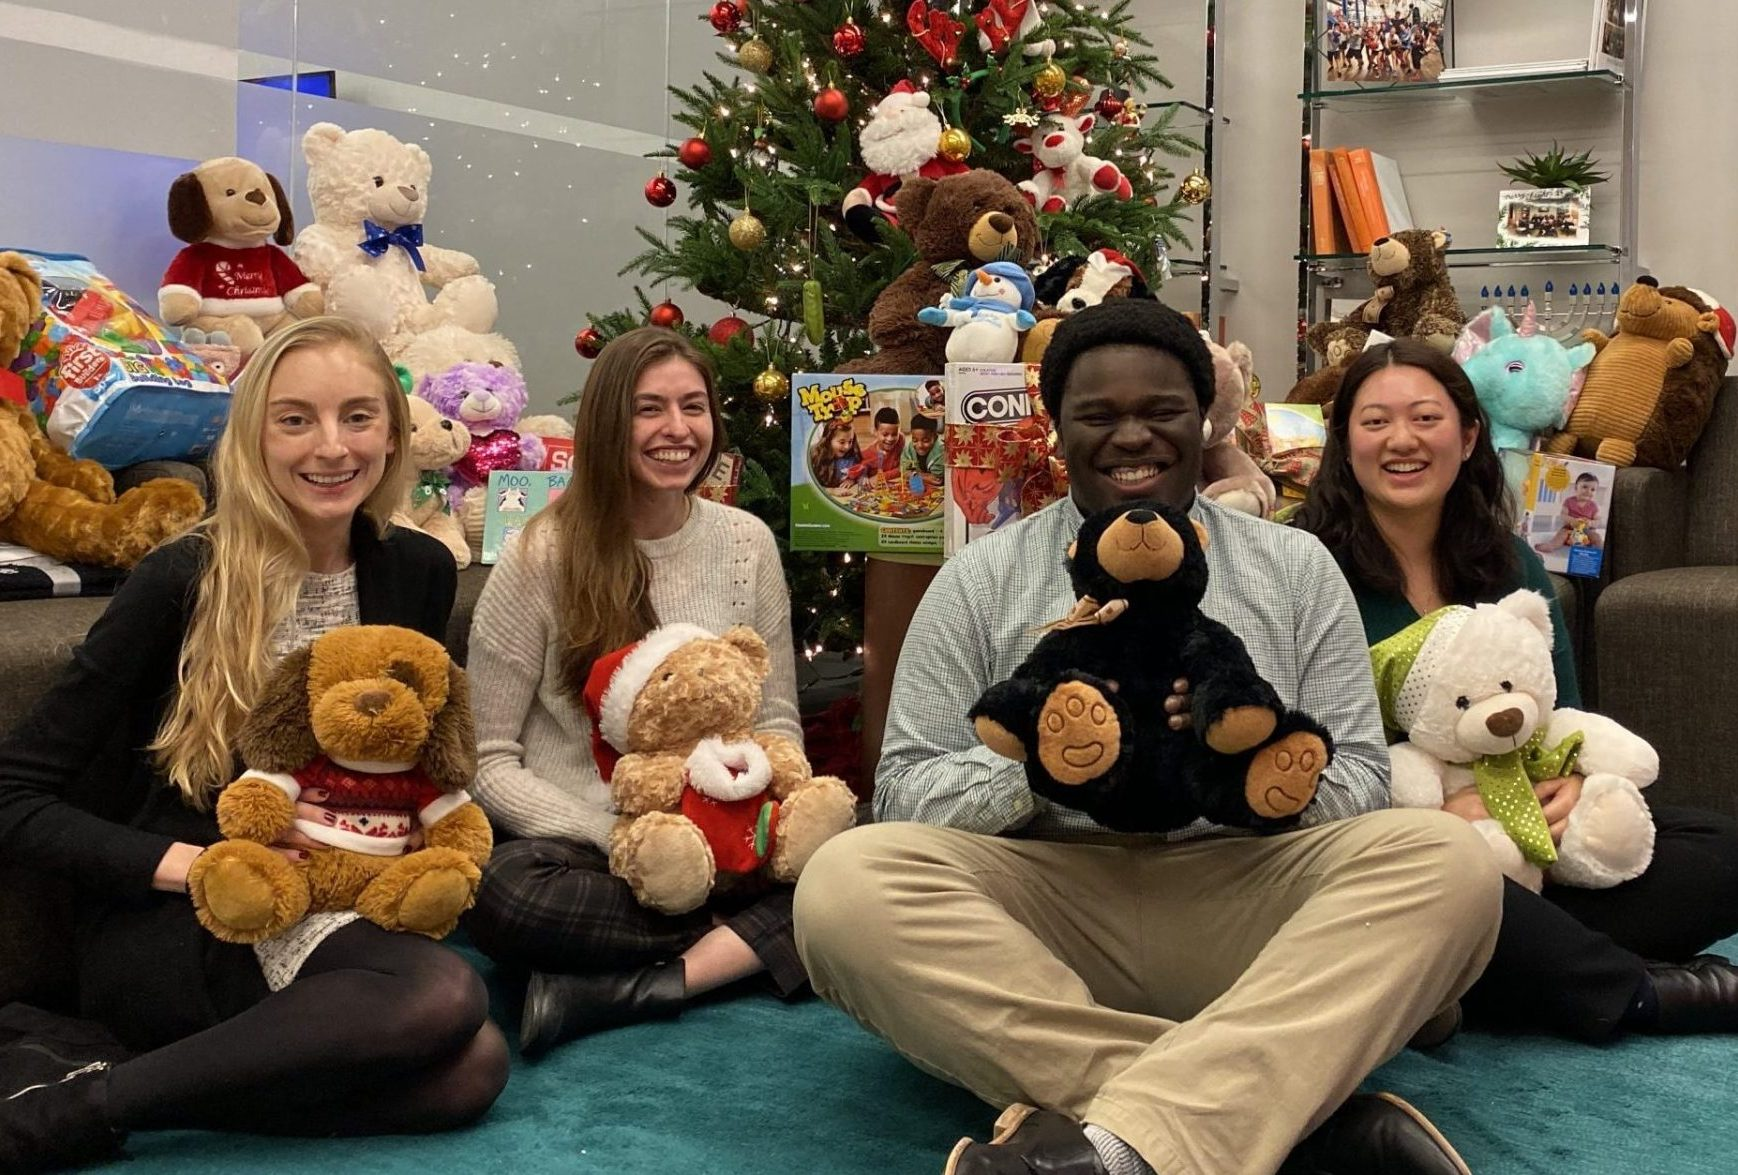 CBPartners team raise money to deliver Christmas gifts to patients in Mount Sinai Hospital